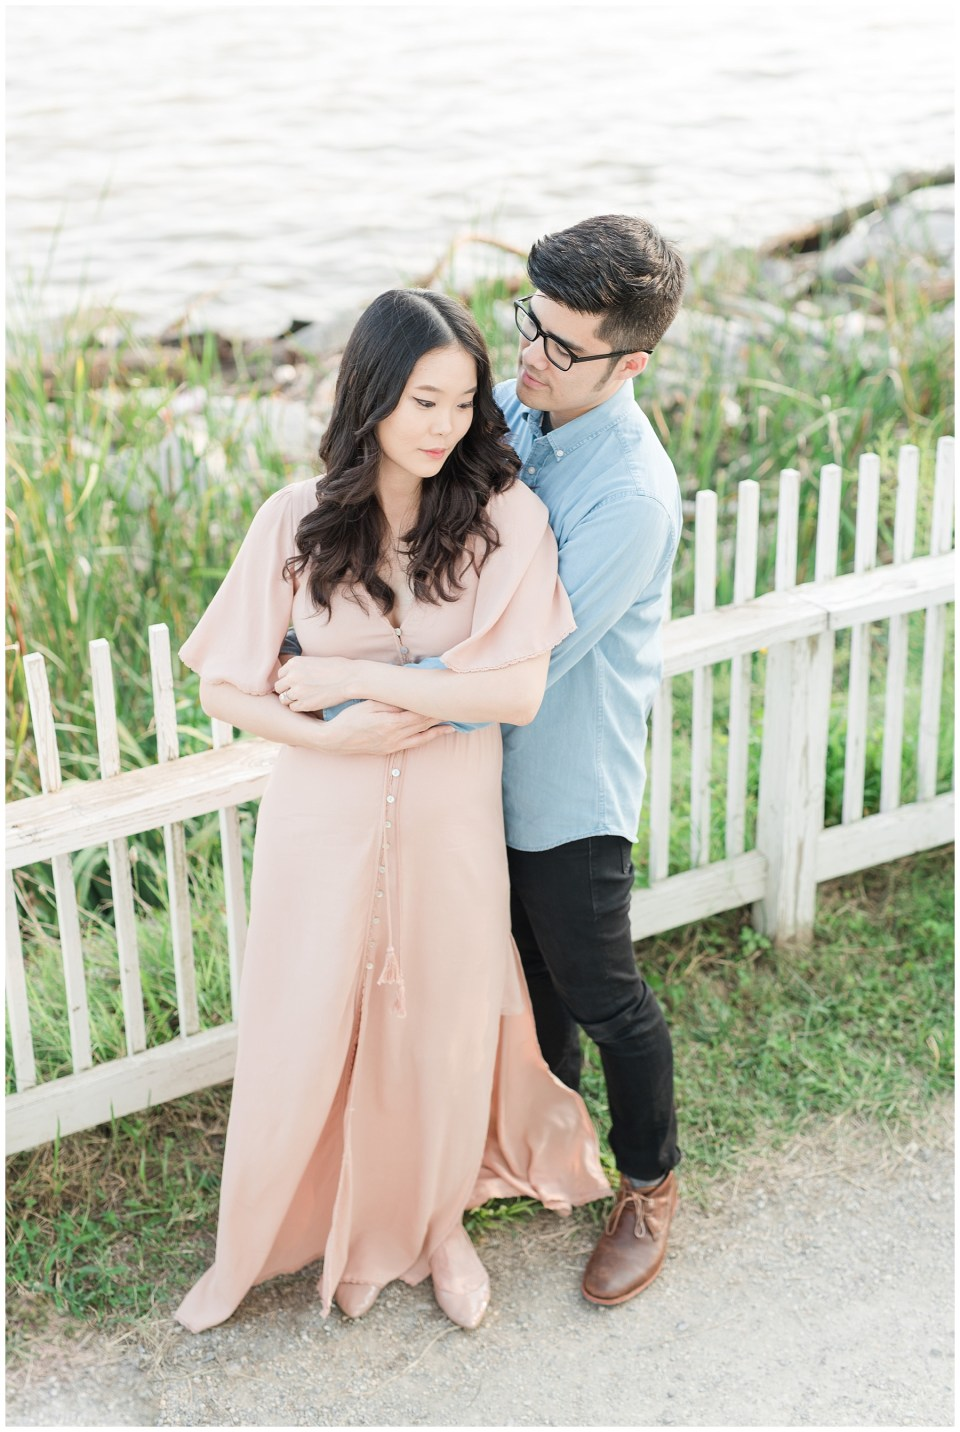 jones-point-park-alexandria-maternity-session-photos-emily-alyssa-photography-14.jpg